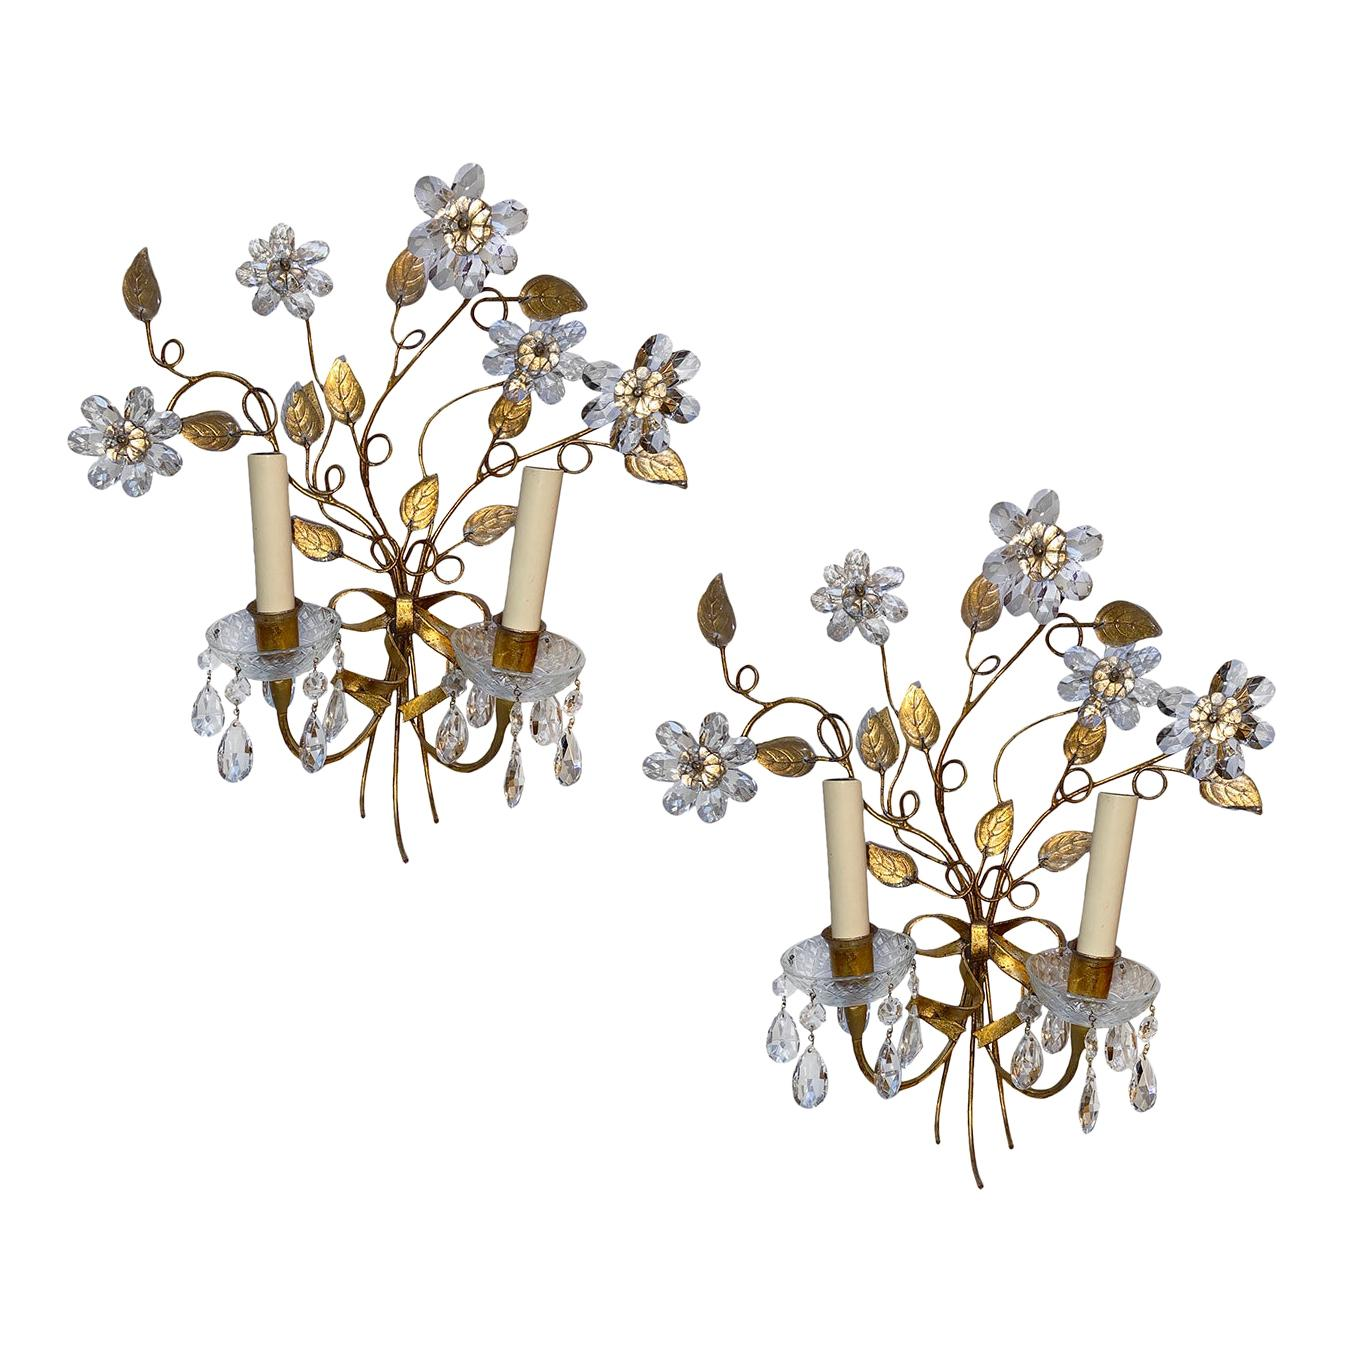 Set of Crystal Flower Sconces, Sold in Pairs